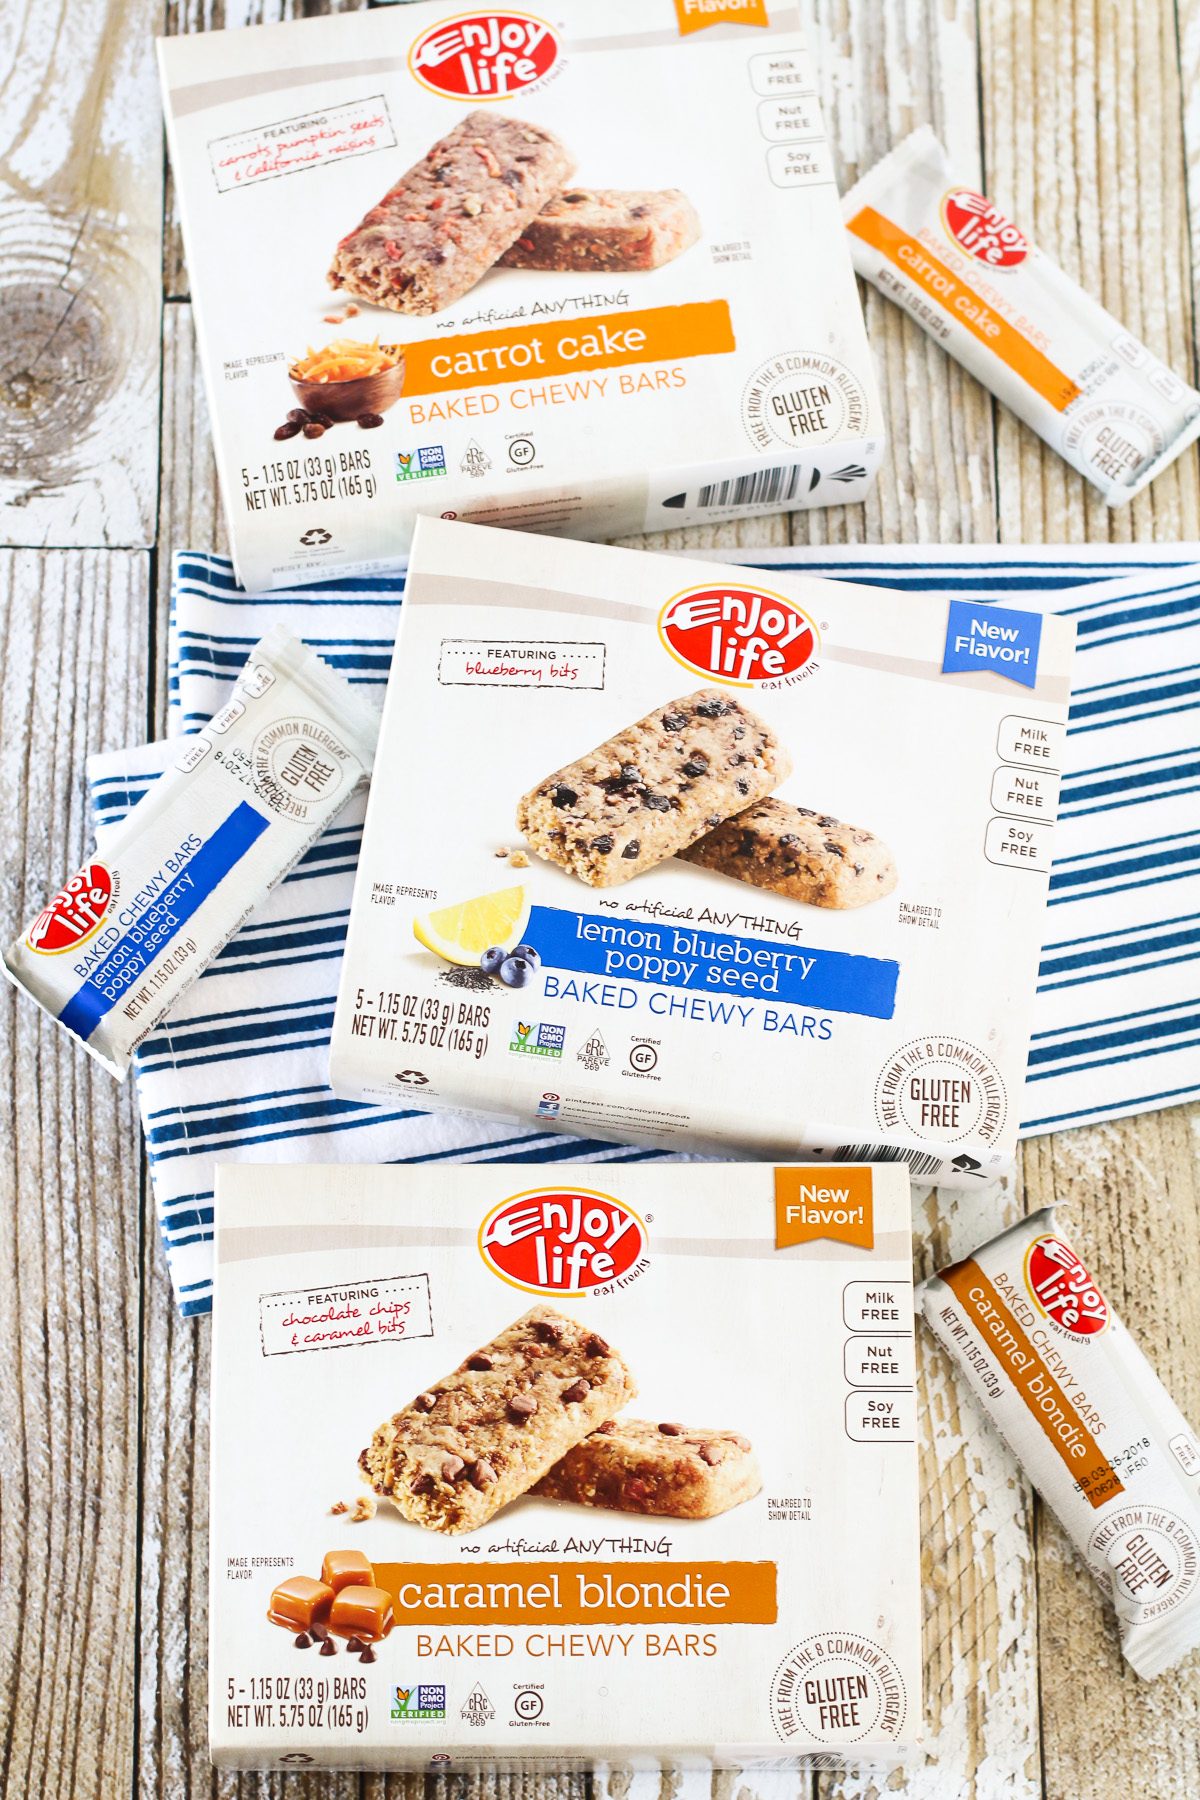 Enjoy Life Baked Chewy Bars. These bars are vegan, gluten free and top 8 free! Perfect healthy snack!